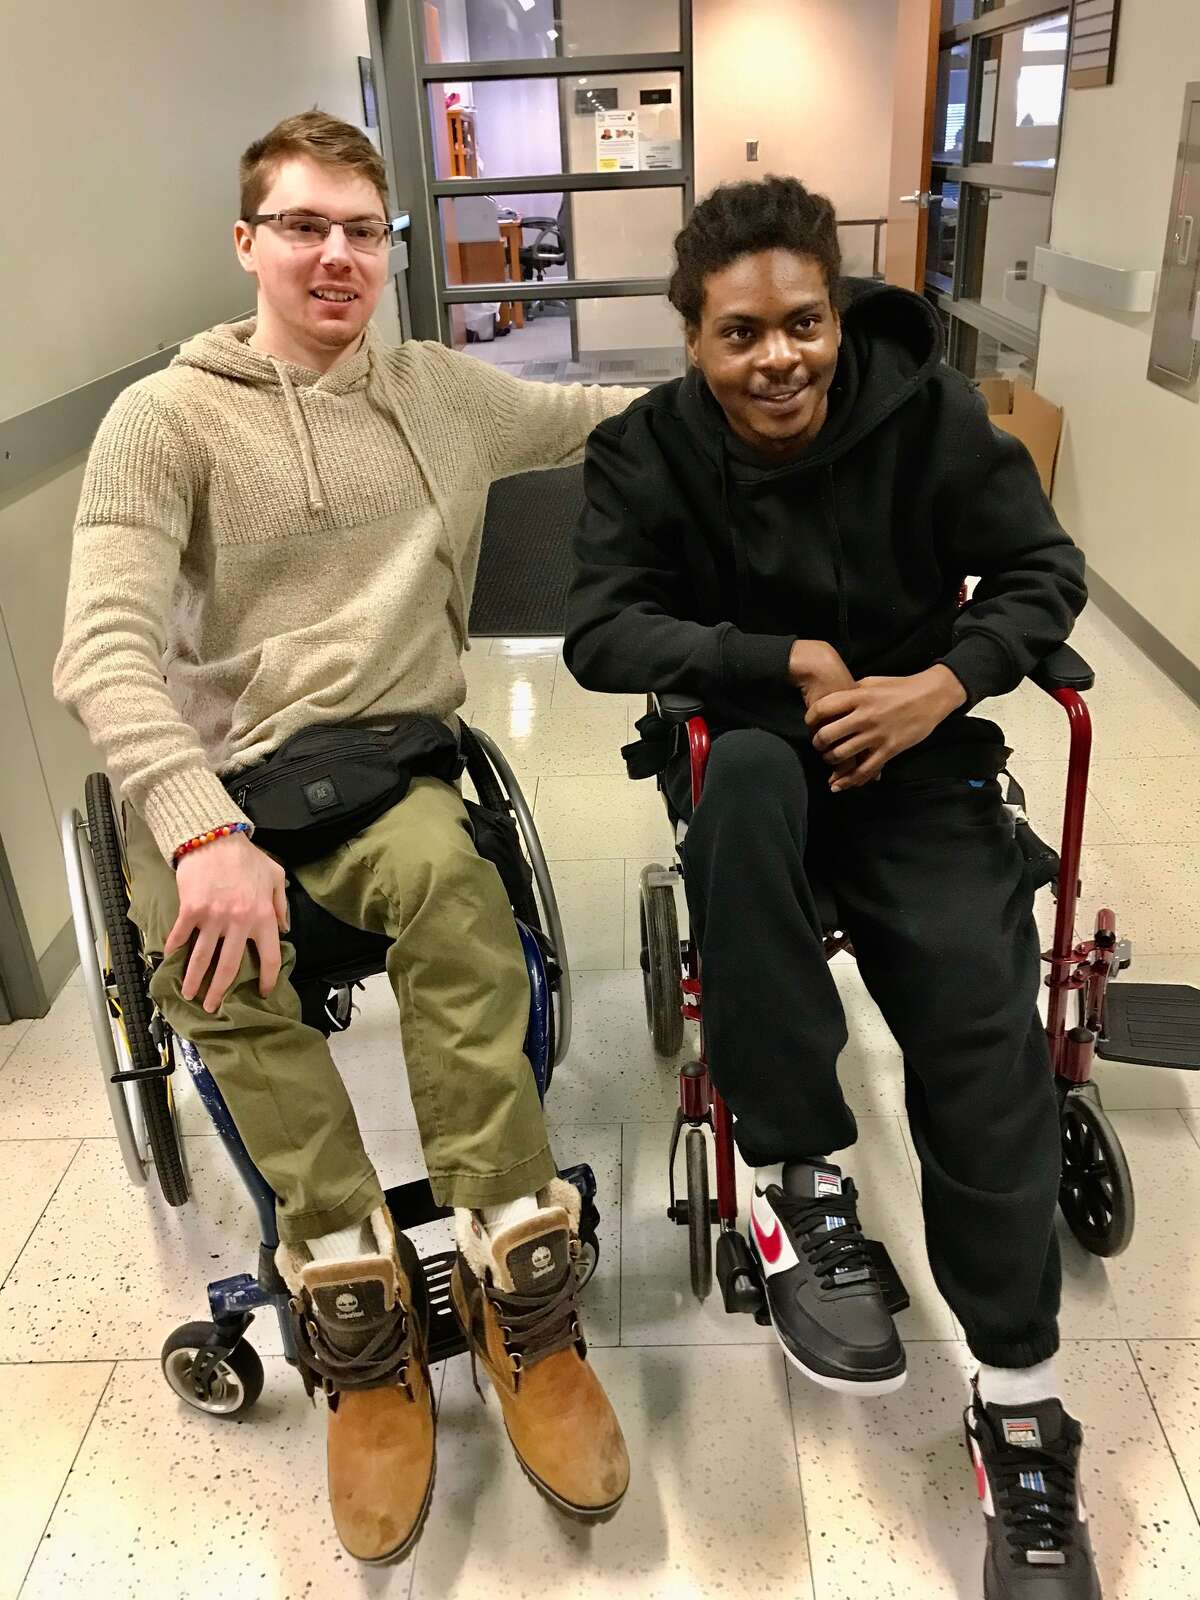 Otto Miller, 22, and Ellazar Williams, 20, forged a bond during a meeting at the Rensselaer lab and made plans to keep connected and help each other confront the challenges of being paraplegics